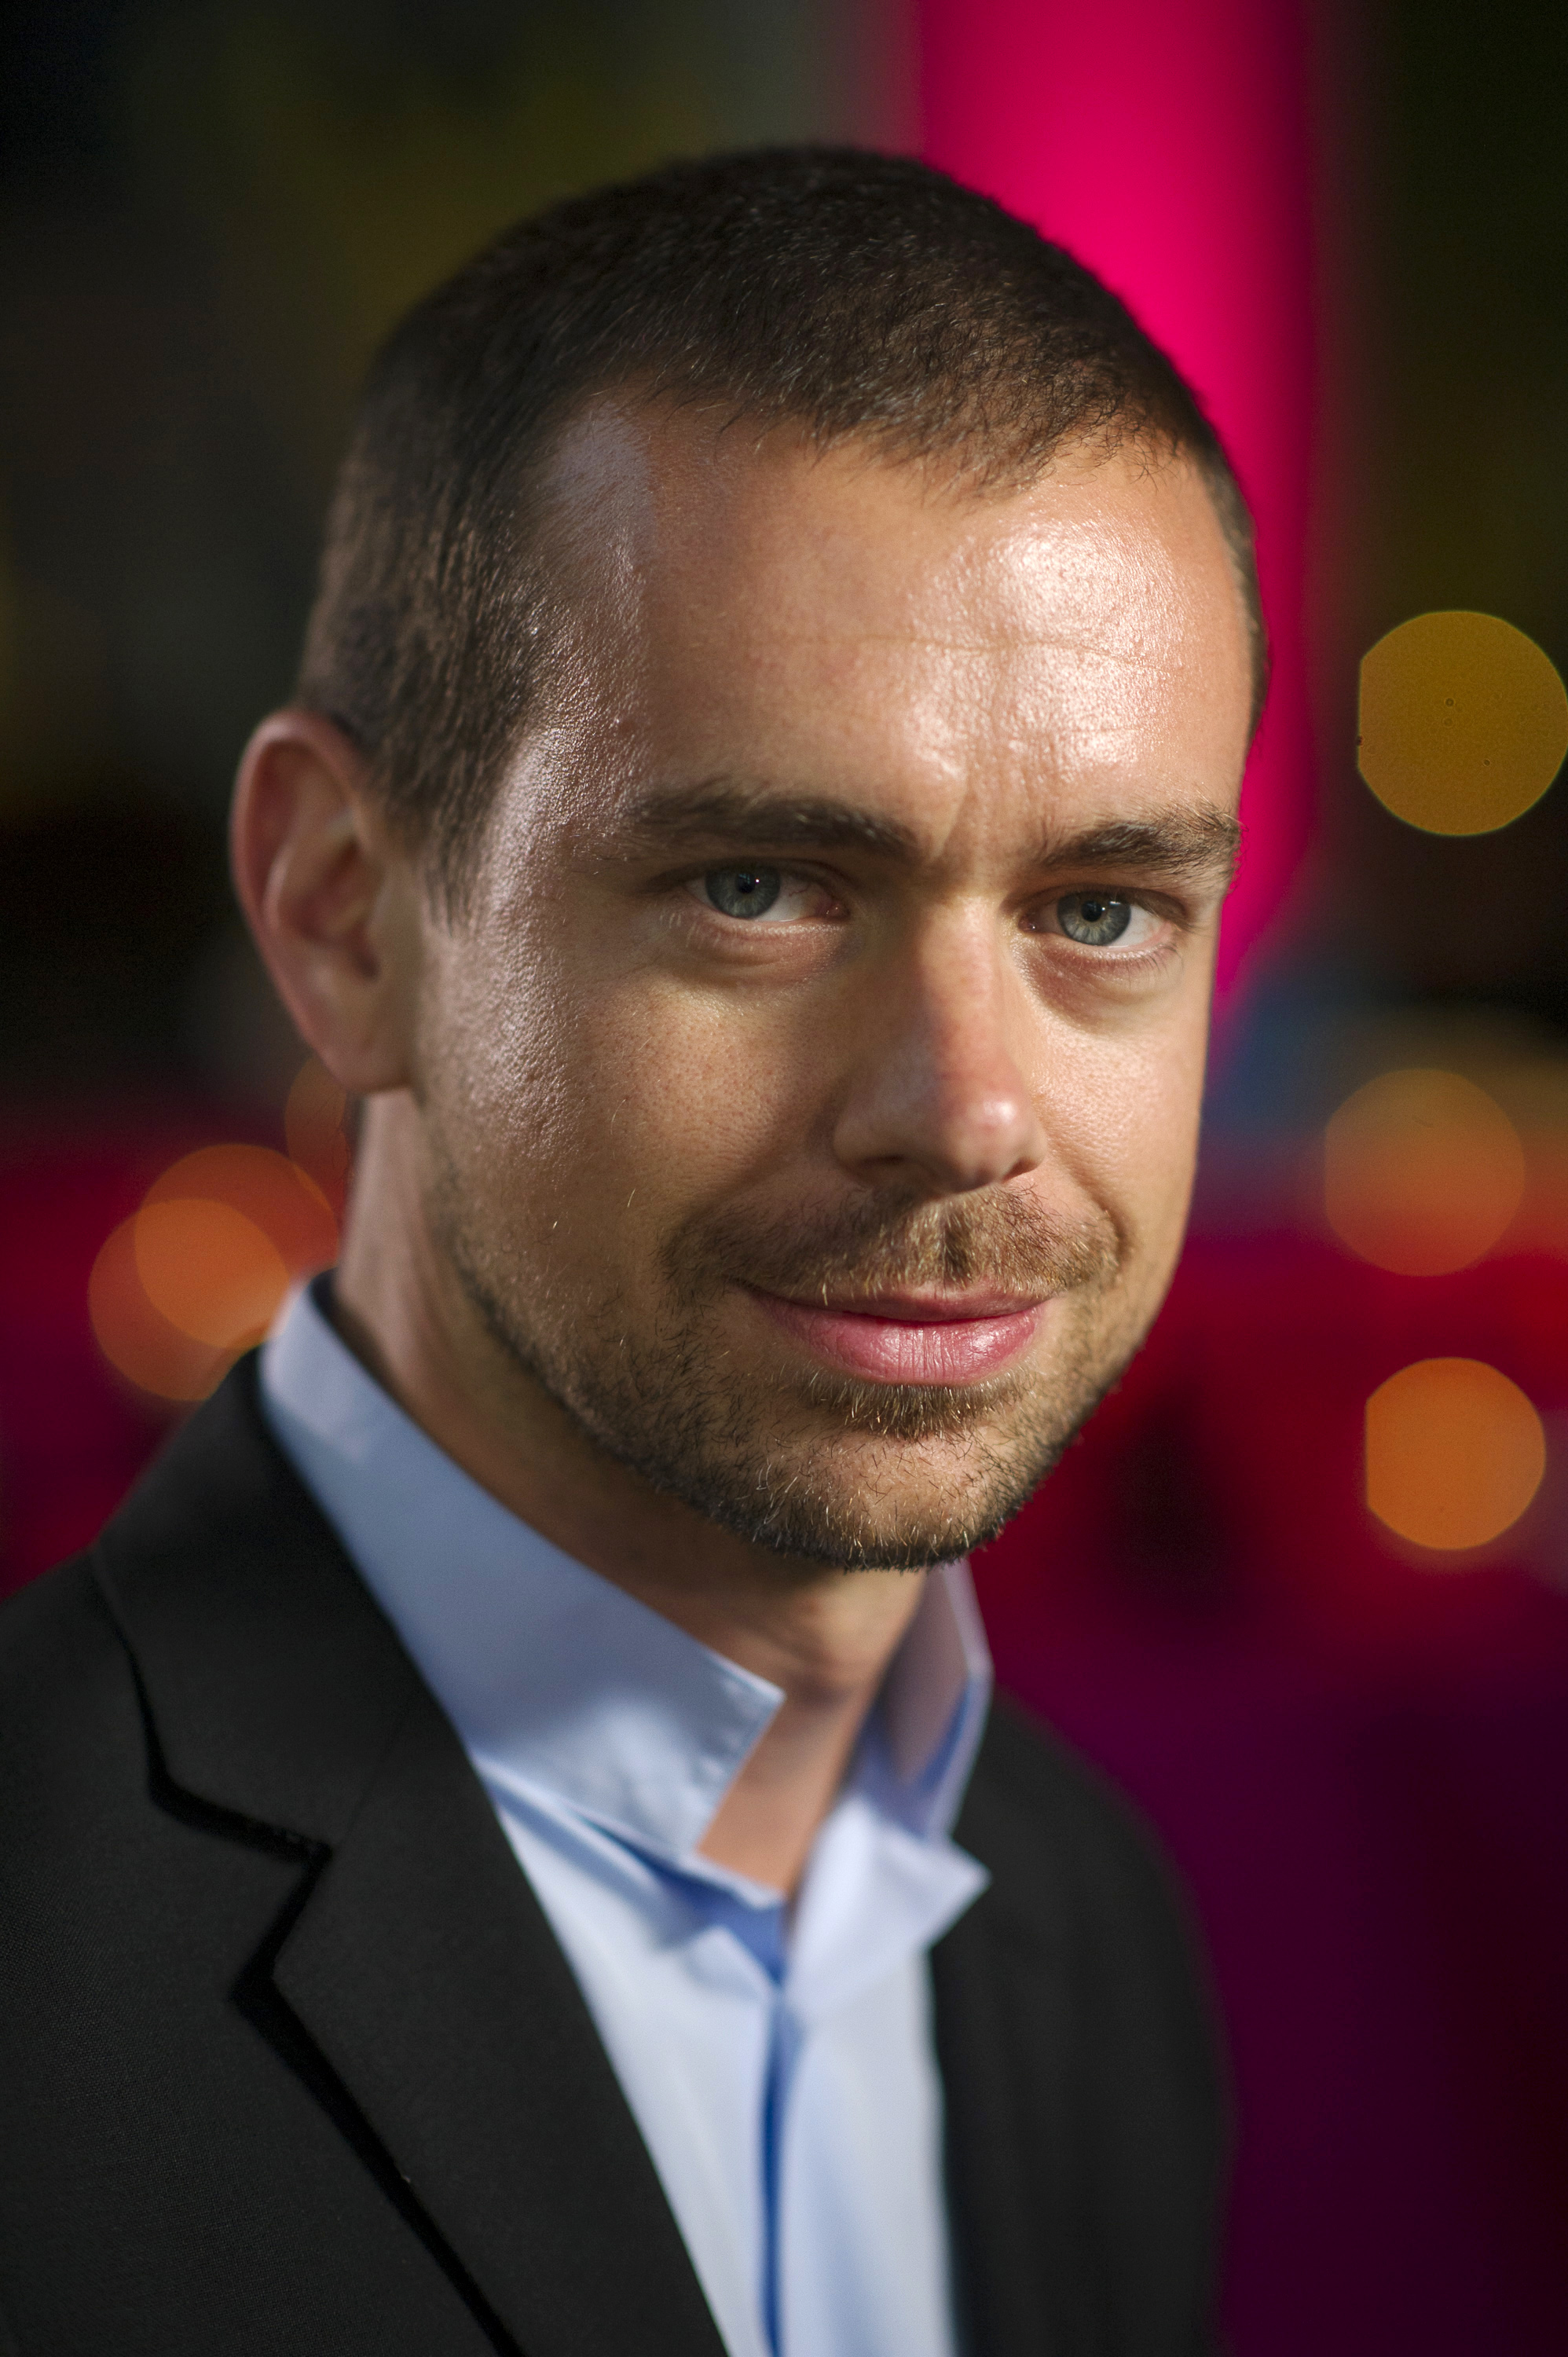 Jack Dorsey, chairman and co-founder of Twitter Inc., poses for a photograph in San Francisco, California on Friday, May 17,  2013.